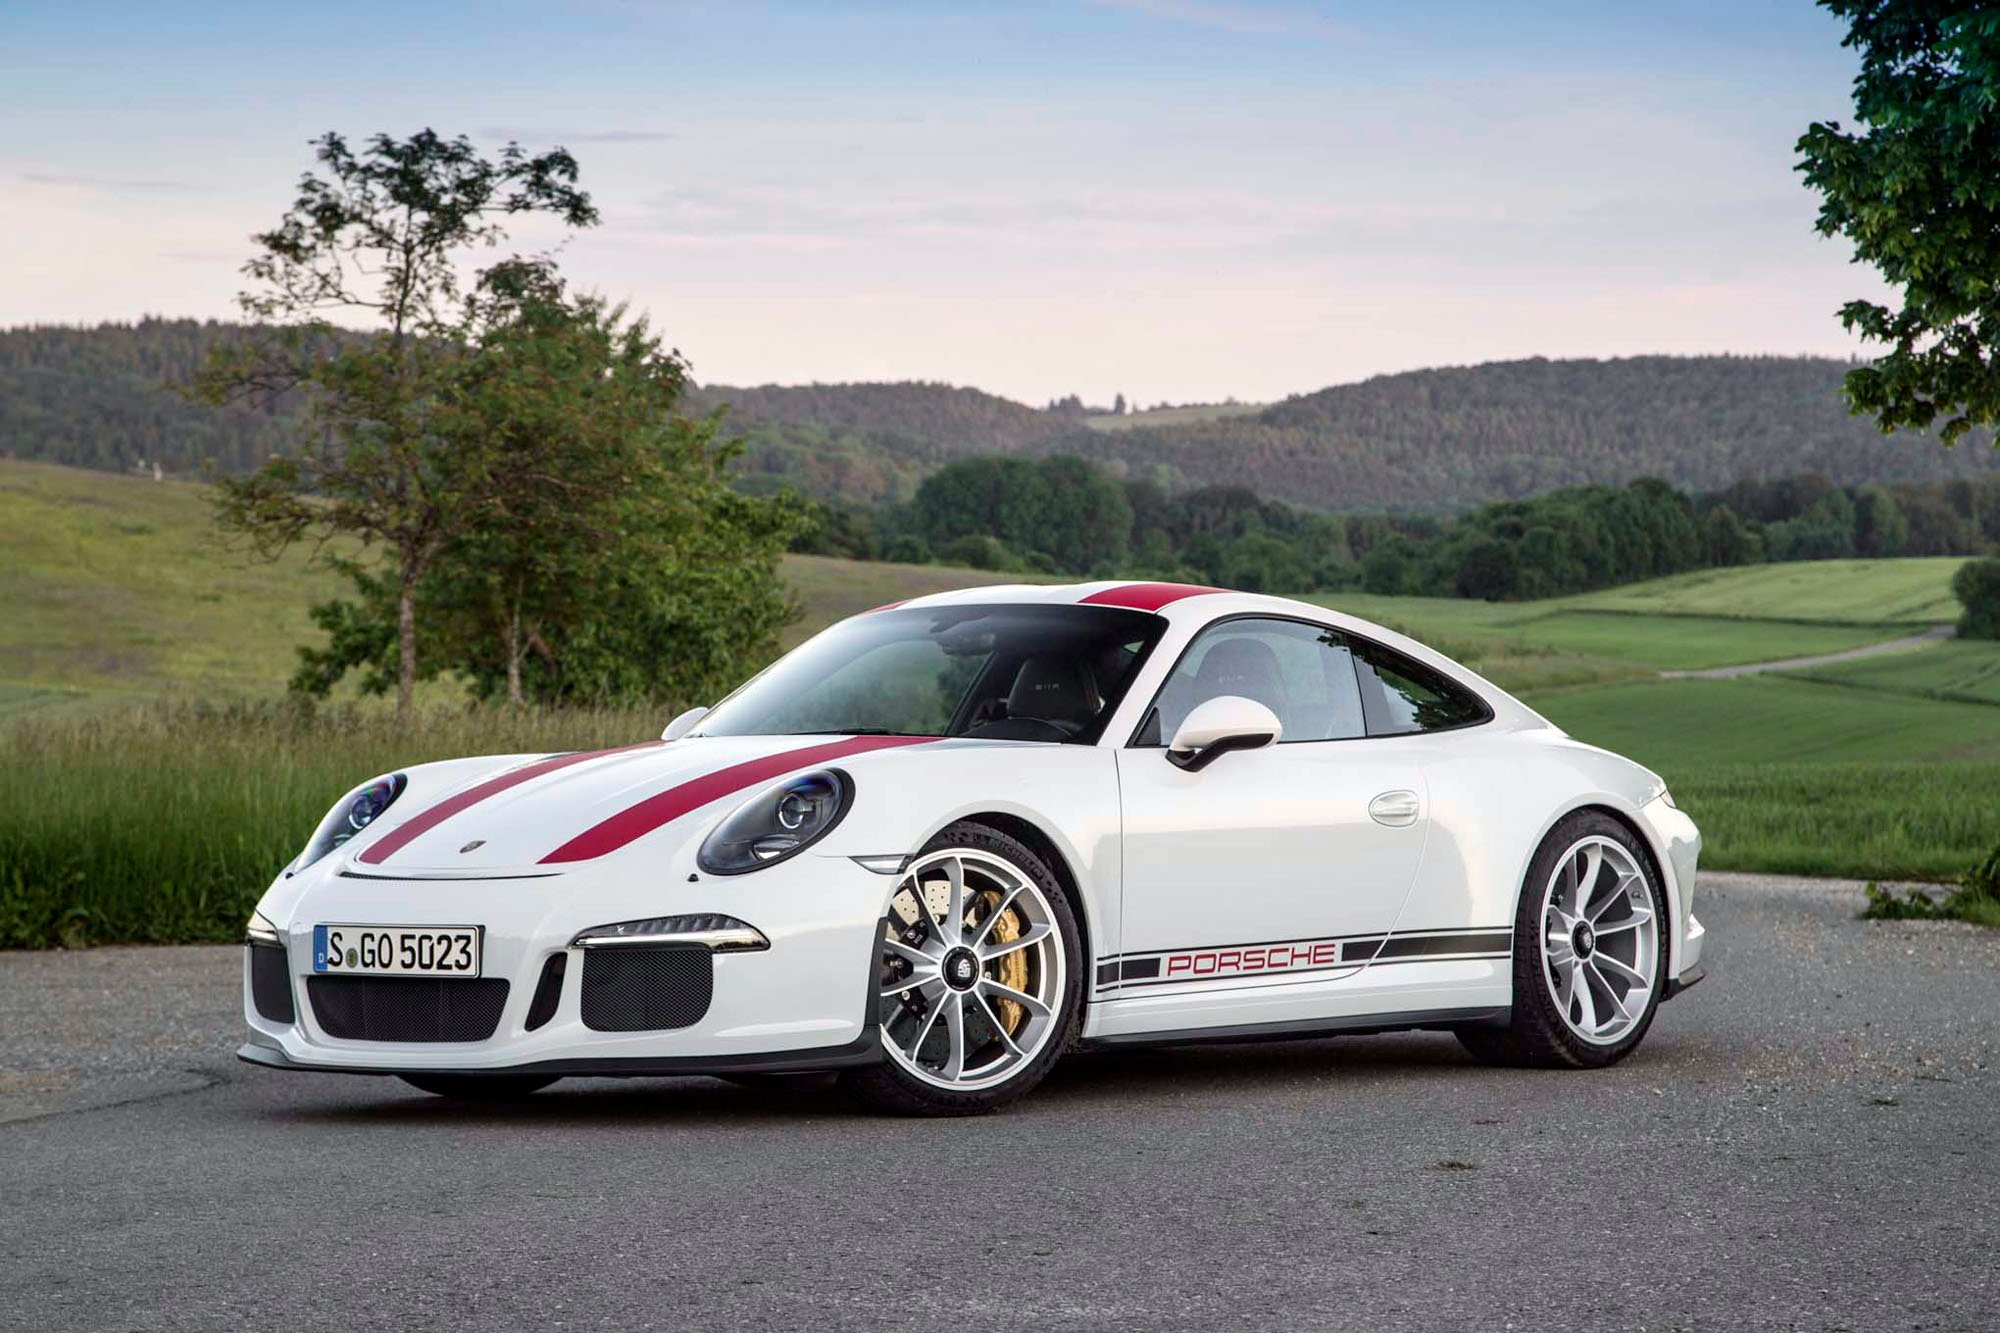 2016 Porsche 911 R Background Wallpaper HD Car Wallpapers 2000x1333